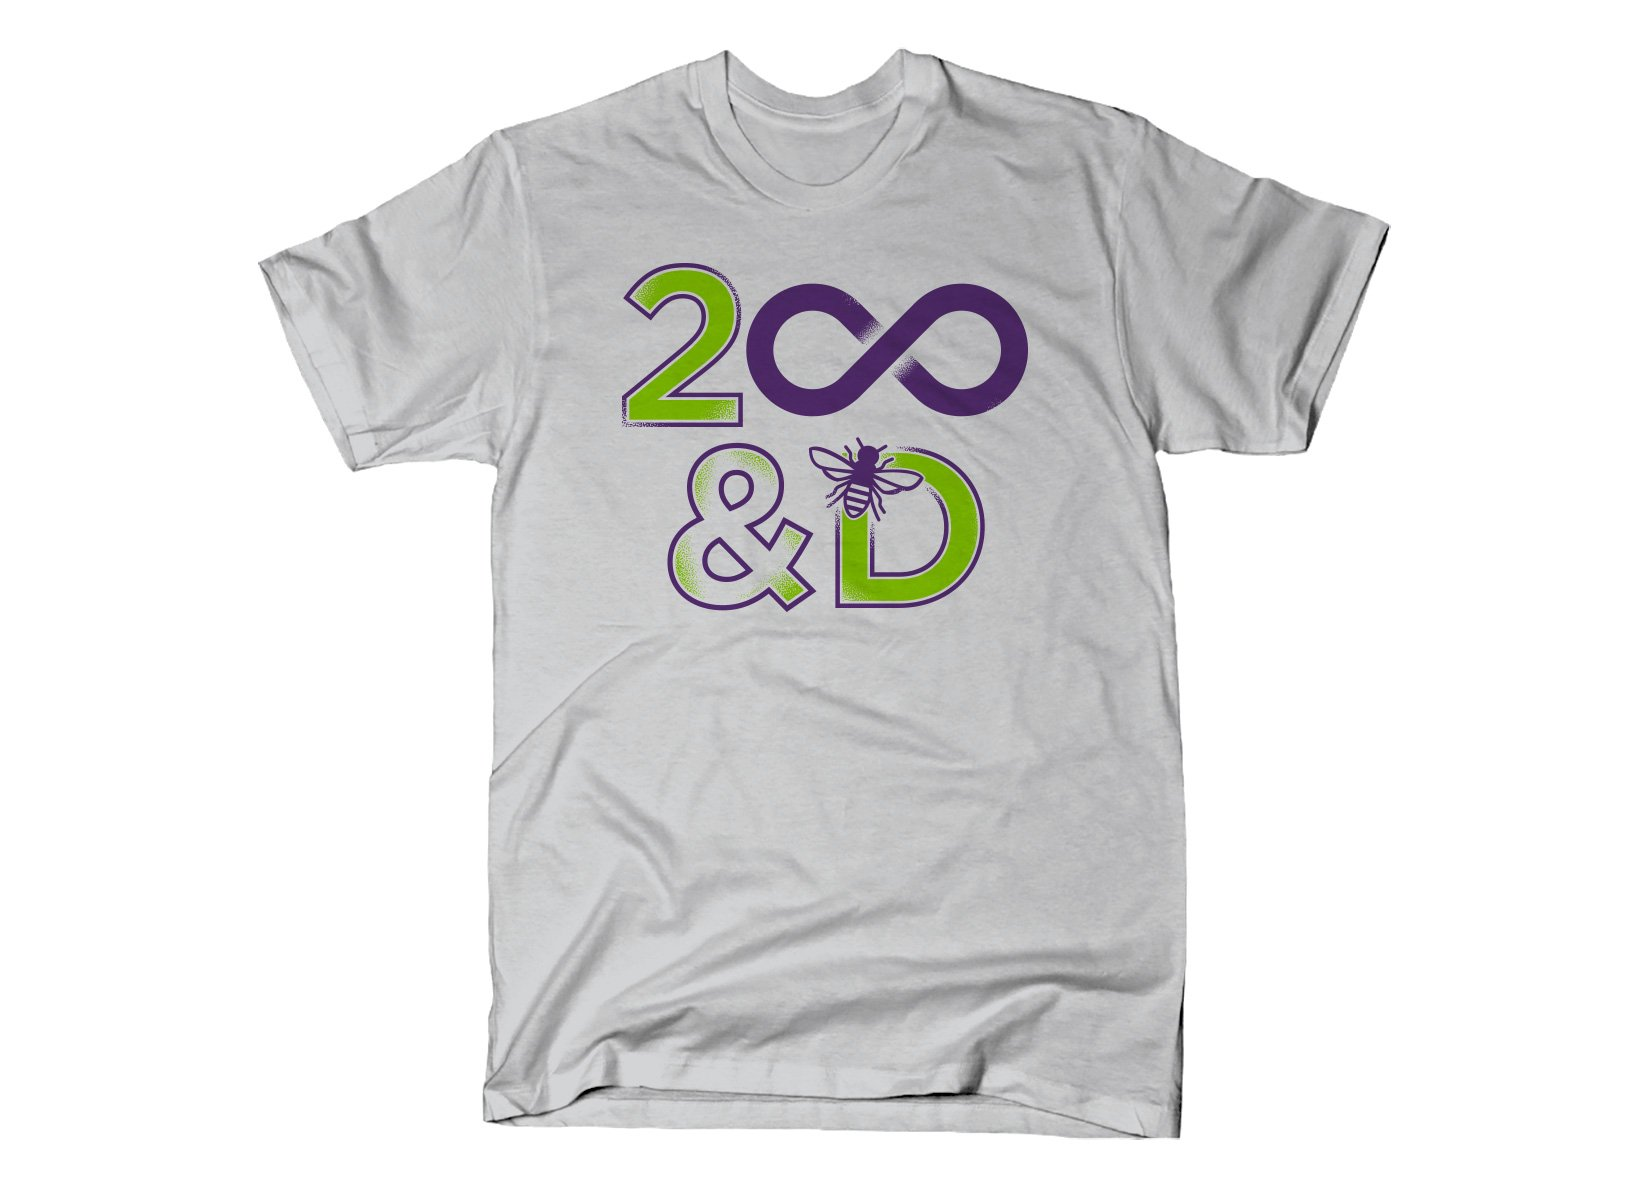 2 Infinity And B On D on Mens T-Shirt